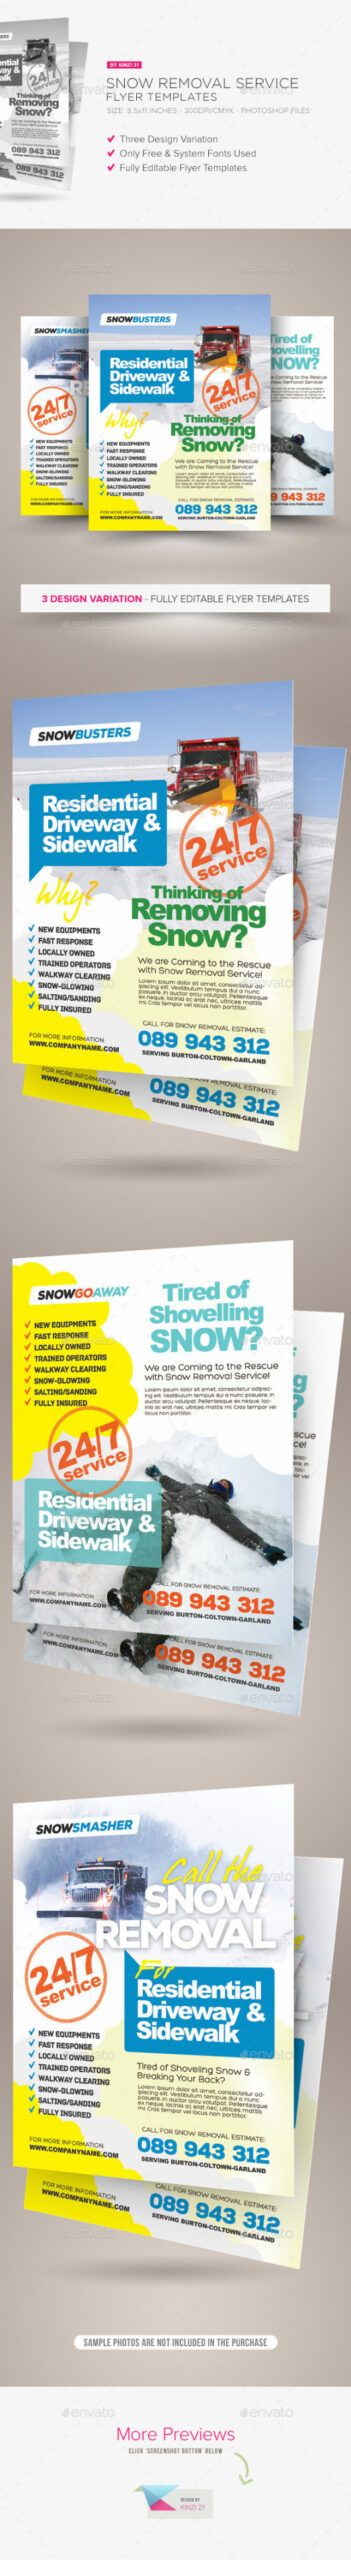 Costum Snow Removal Flyer Template Word Sample